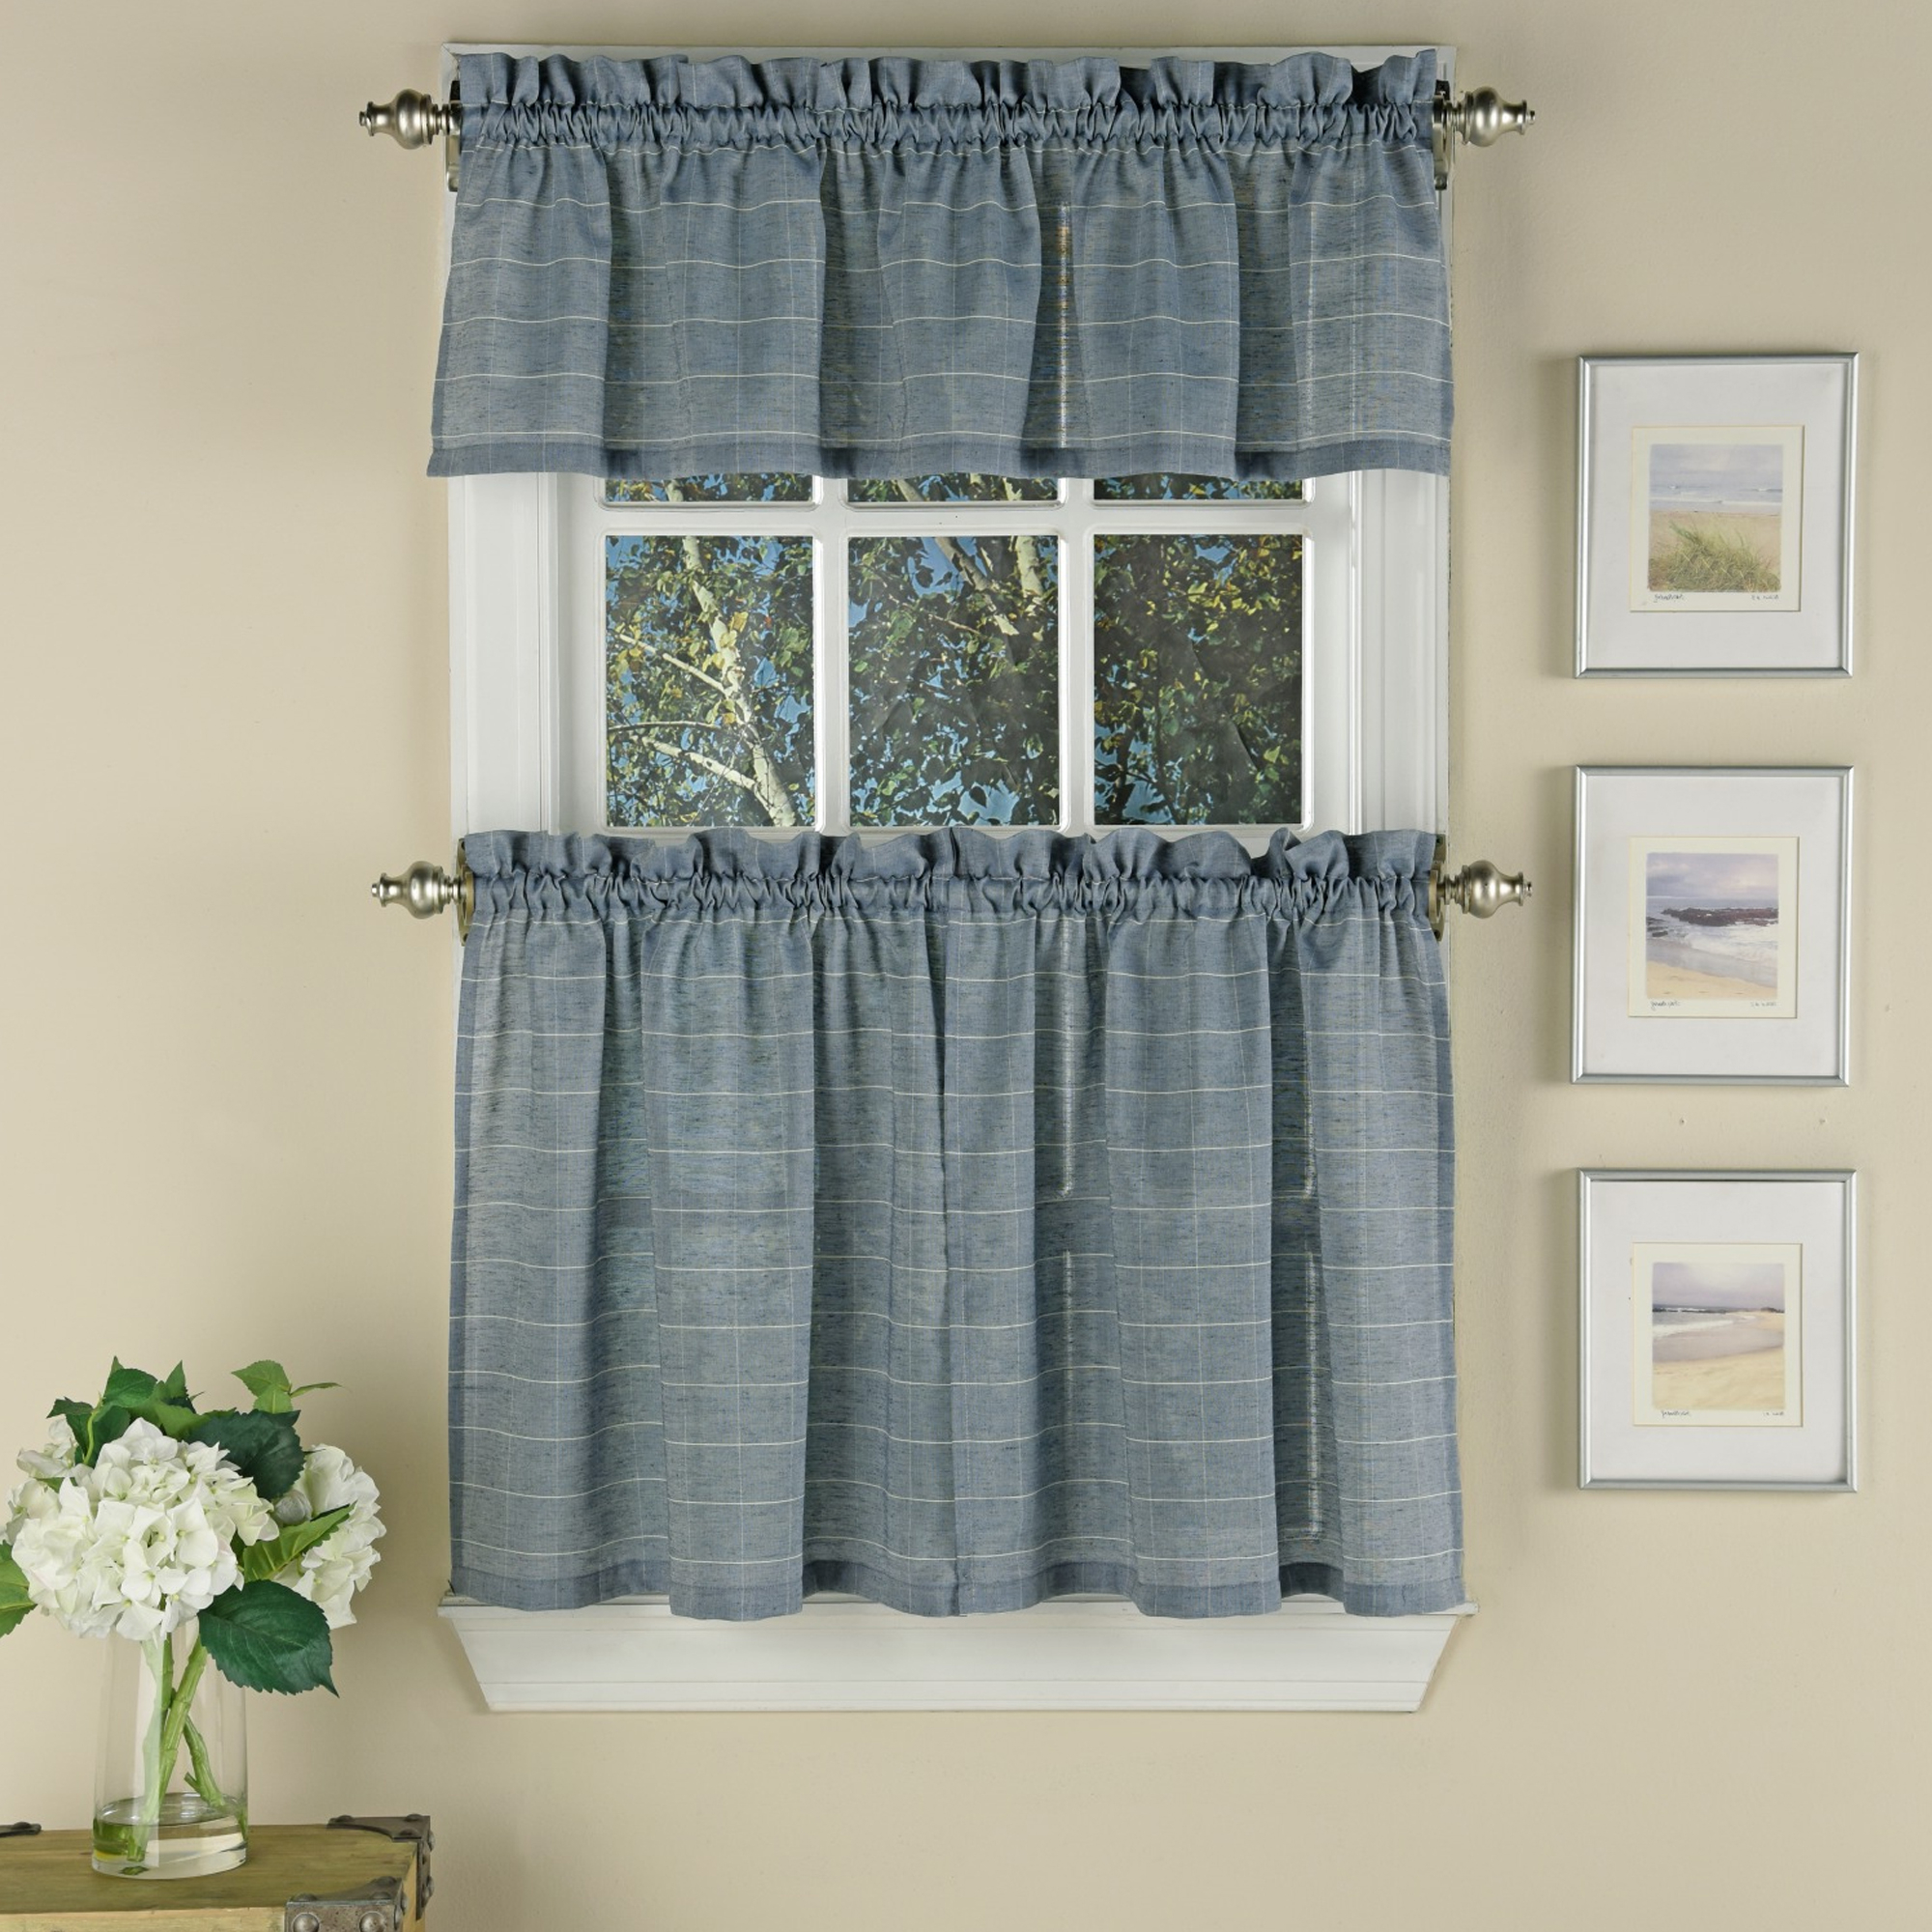 Details About Vue Supple Woven Window Pane Pattern Kitchen Curtain Tiers Or  Valance Blue For Fashionable Kitchen Curtain Tiers (View 1 of 20)